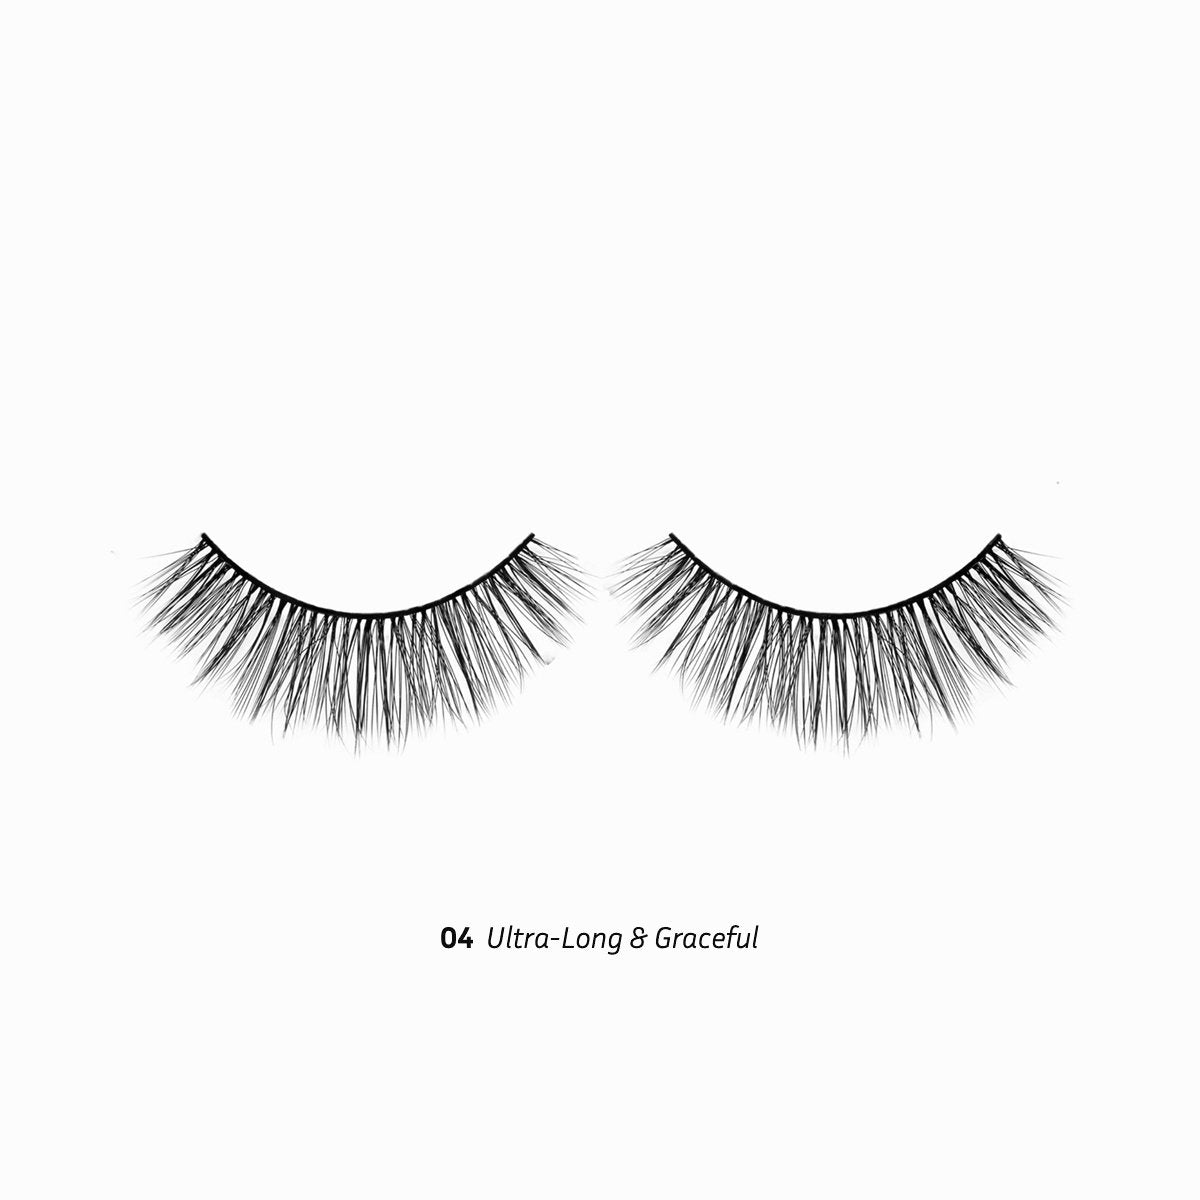 Lithe Lashes® | Classic Volume Collection | Deals - Save Over 20% | Allure Best of Beauty Winner | False Lashes | Strip Lashes | Falsies | Faux Lashes